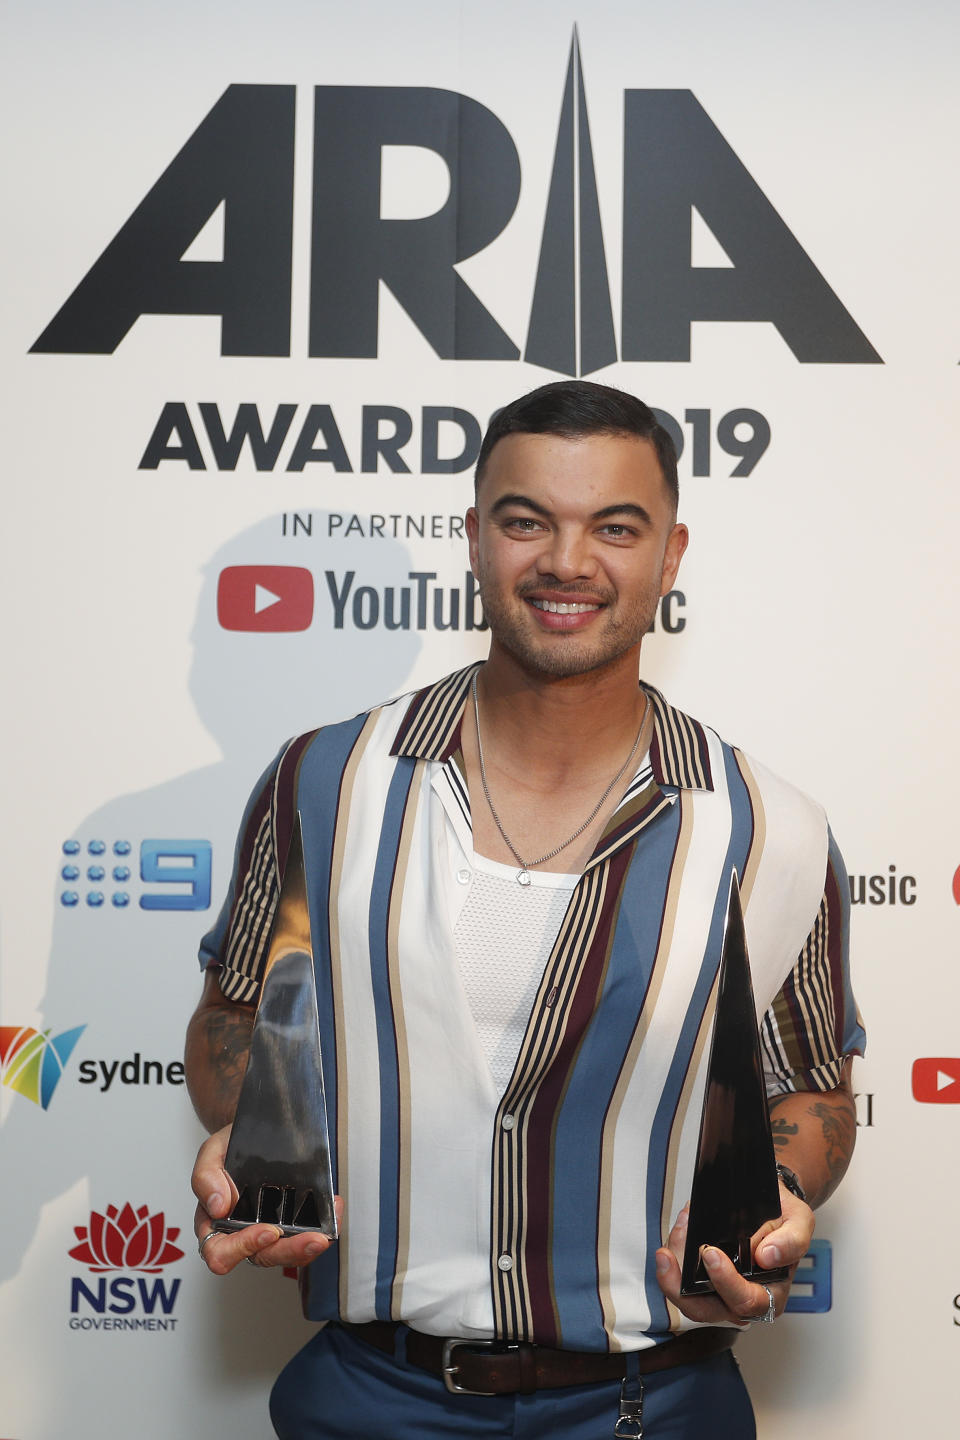 Guy Sebastian poses in the awards room with the ARIA for Best Video and Song of The Year during the 33rd Annual ARIA Awards 2019 at The Star on November 27, 2019 in Sydney, Australia.